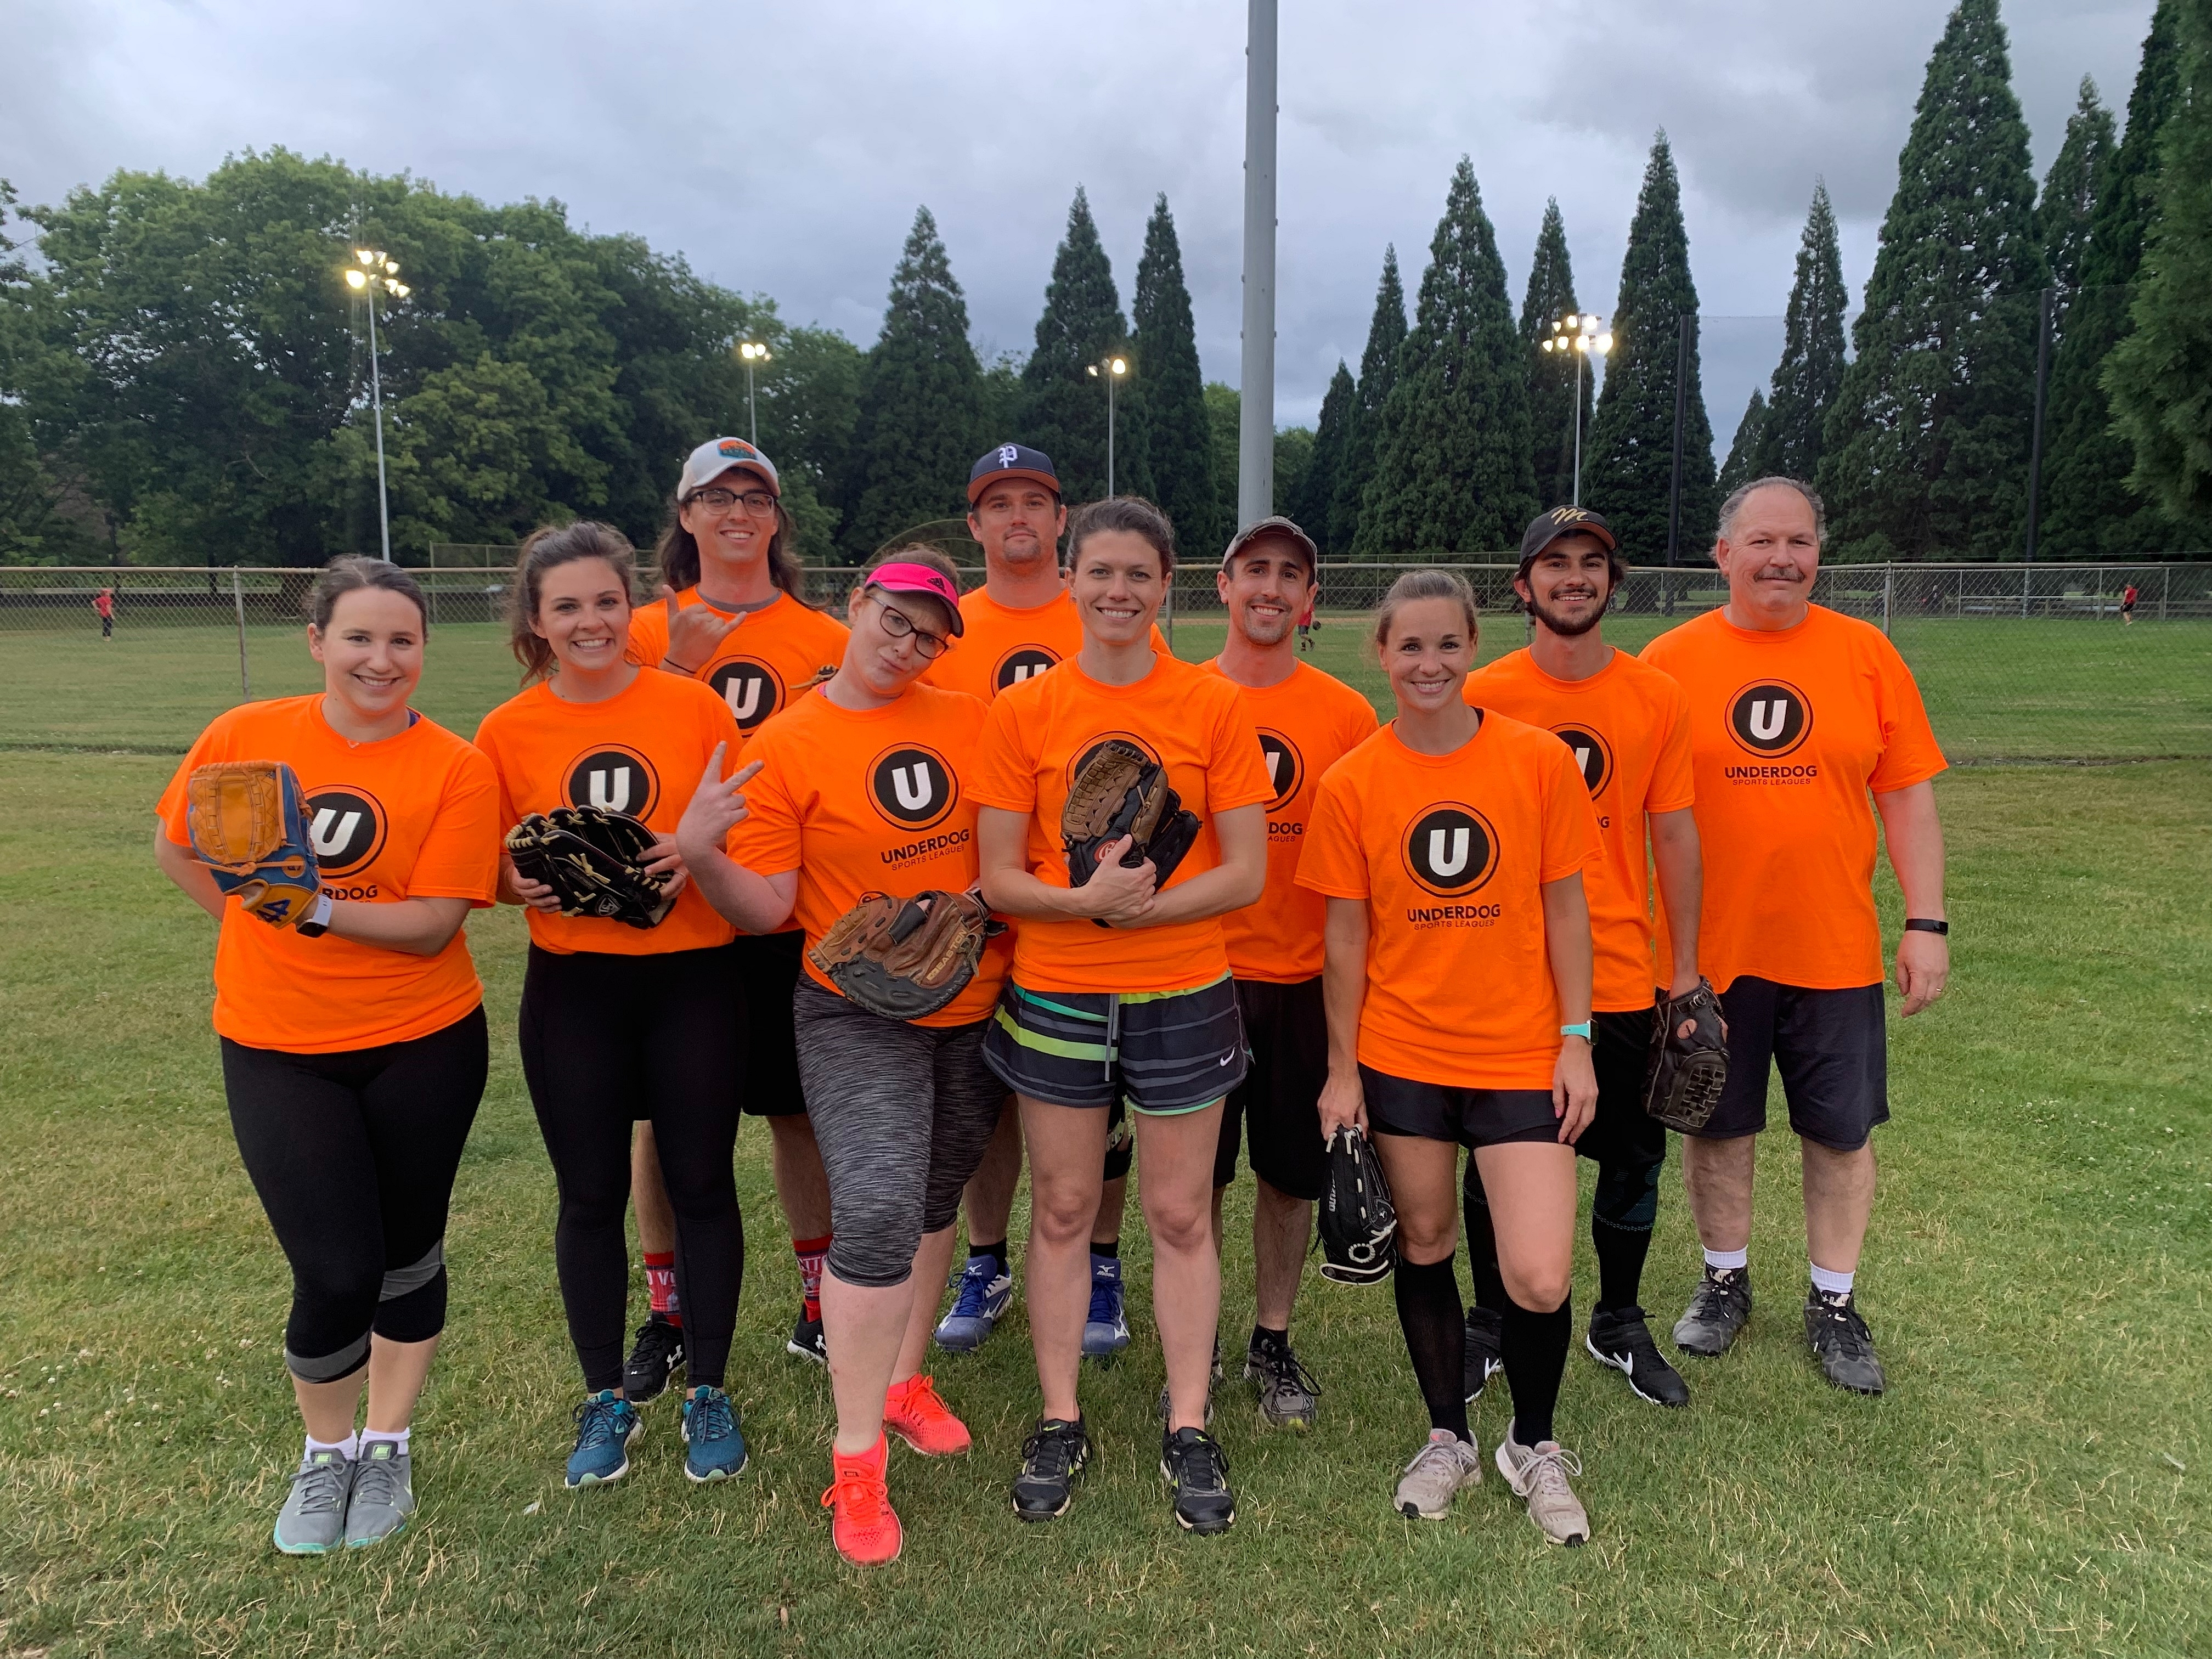 Portland Sports Leagues, Corporate Team Building and Staff